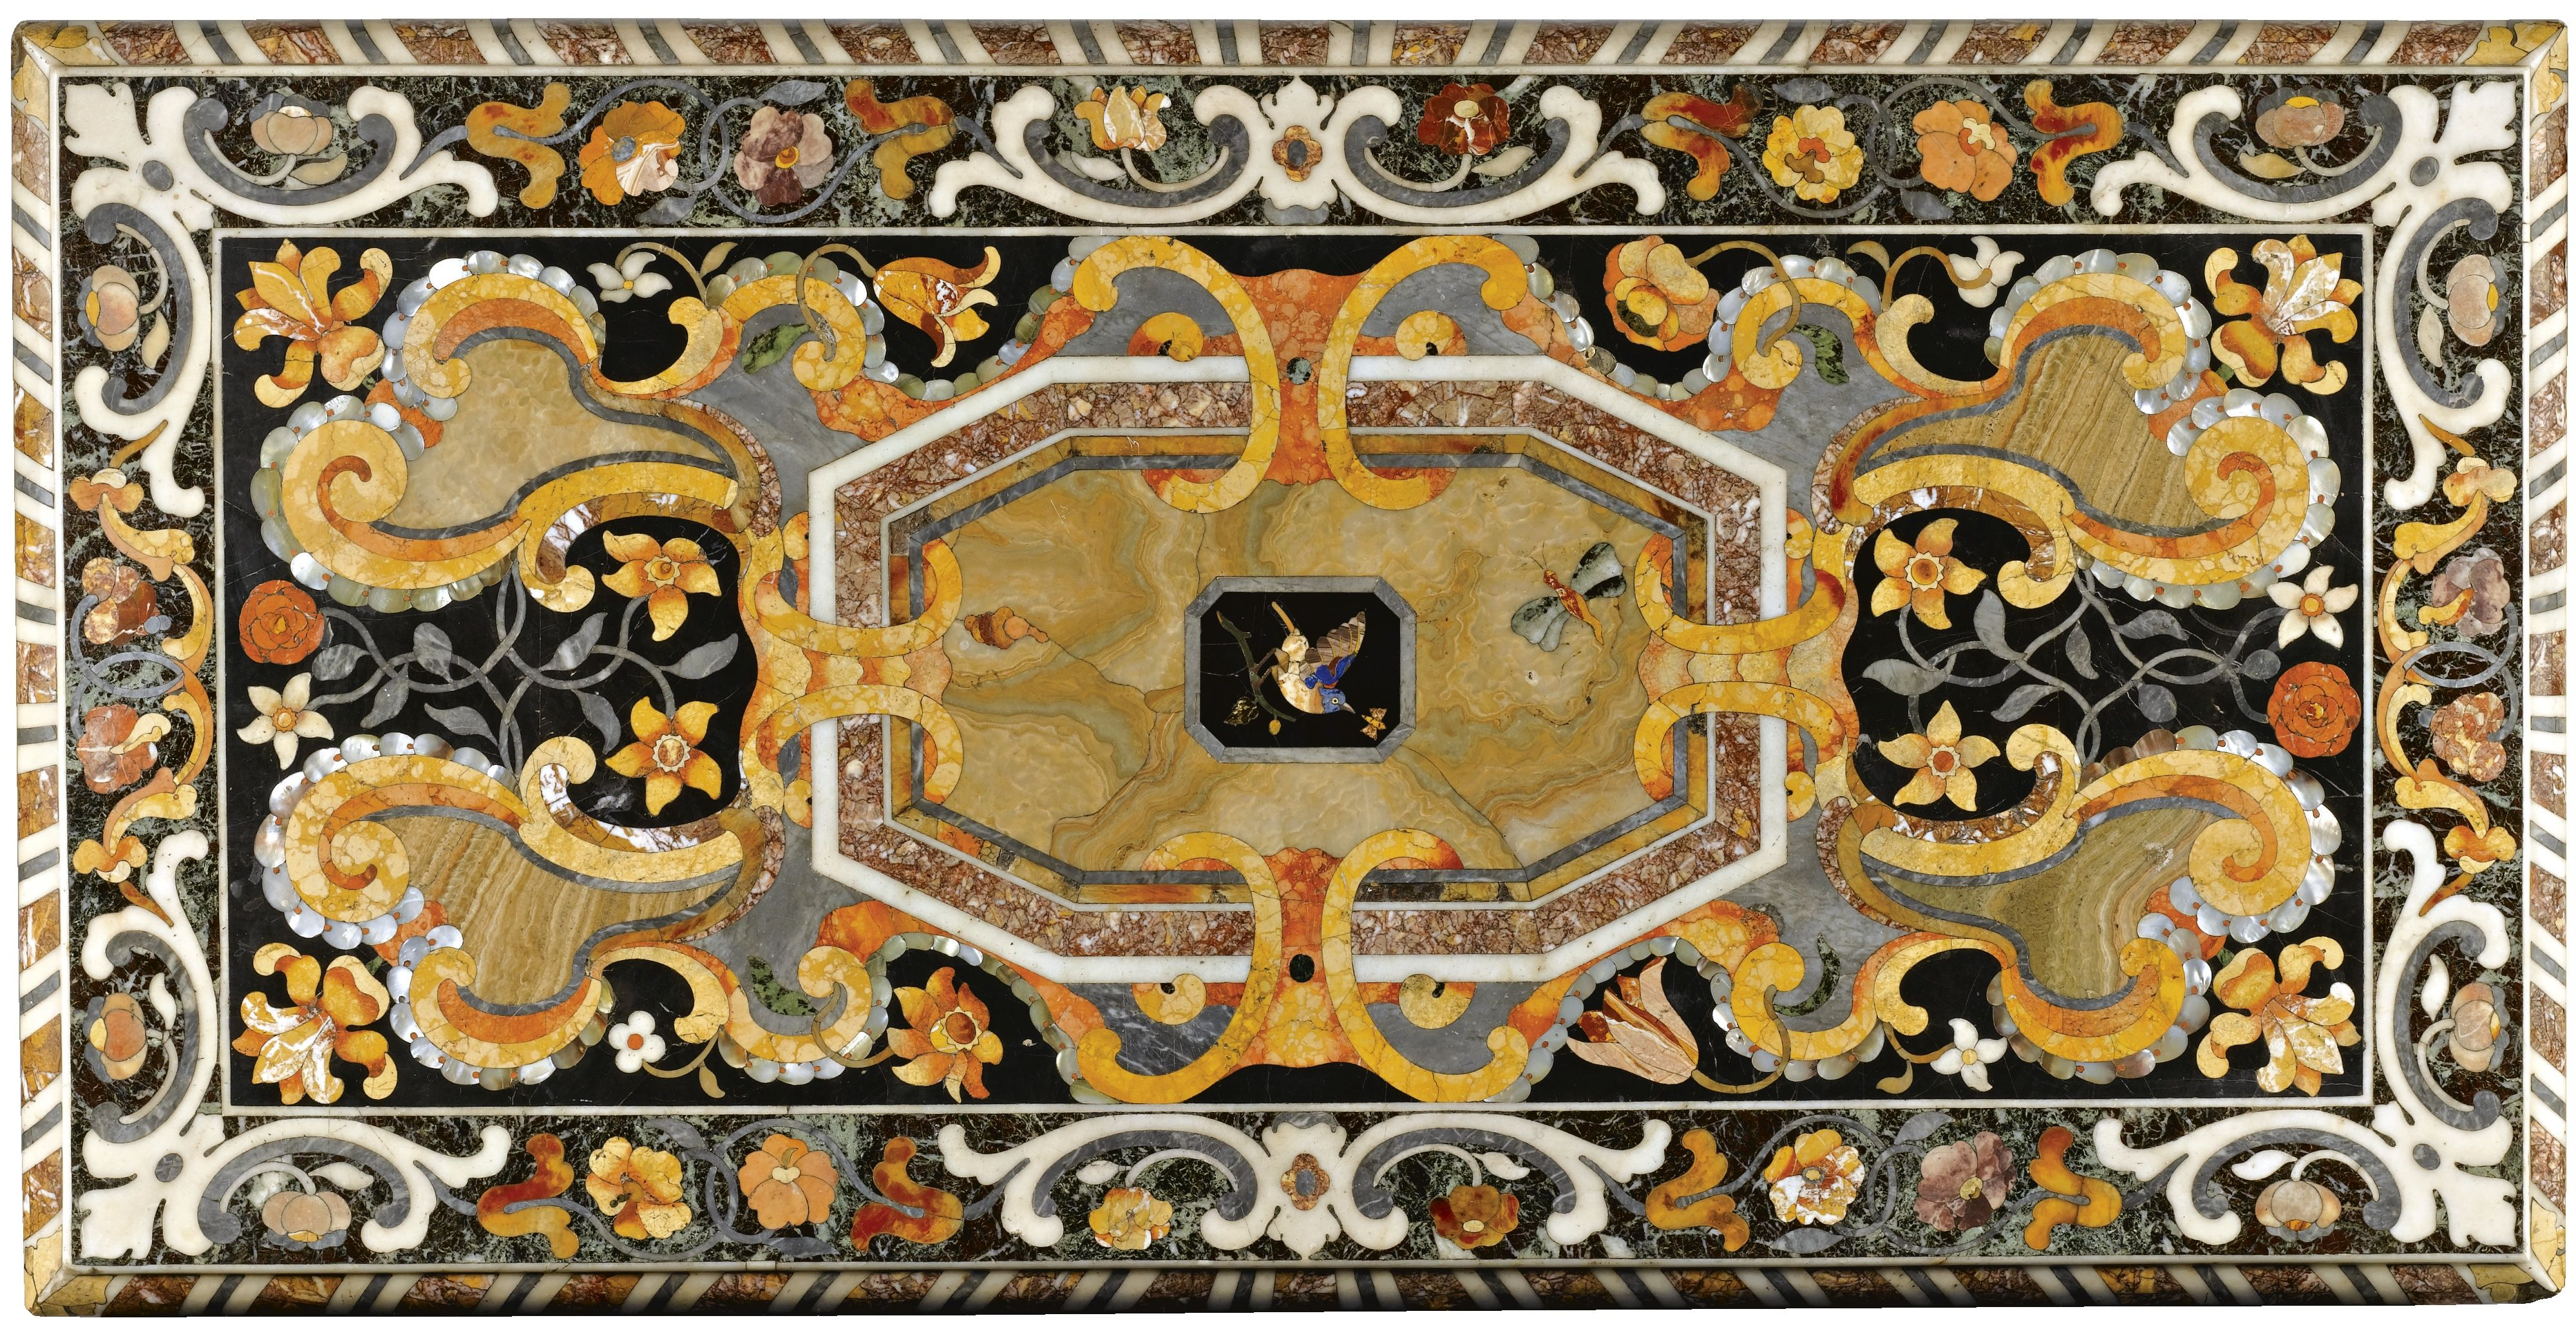 Date Unspecified A Pair Of Italian Pietre Dure Tenere Marbleother Pearl Inlaid Table Tops In The Manner Cosimo Fanzago 1591 1678